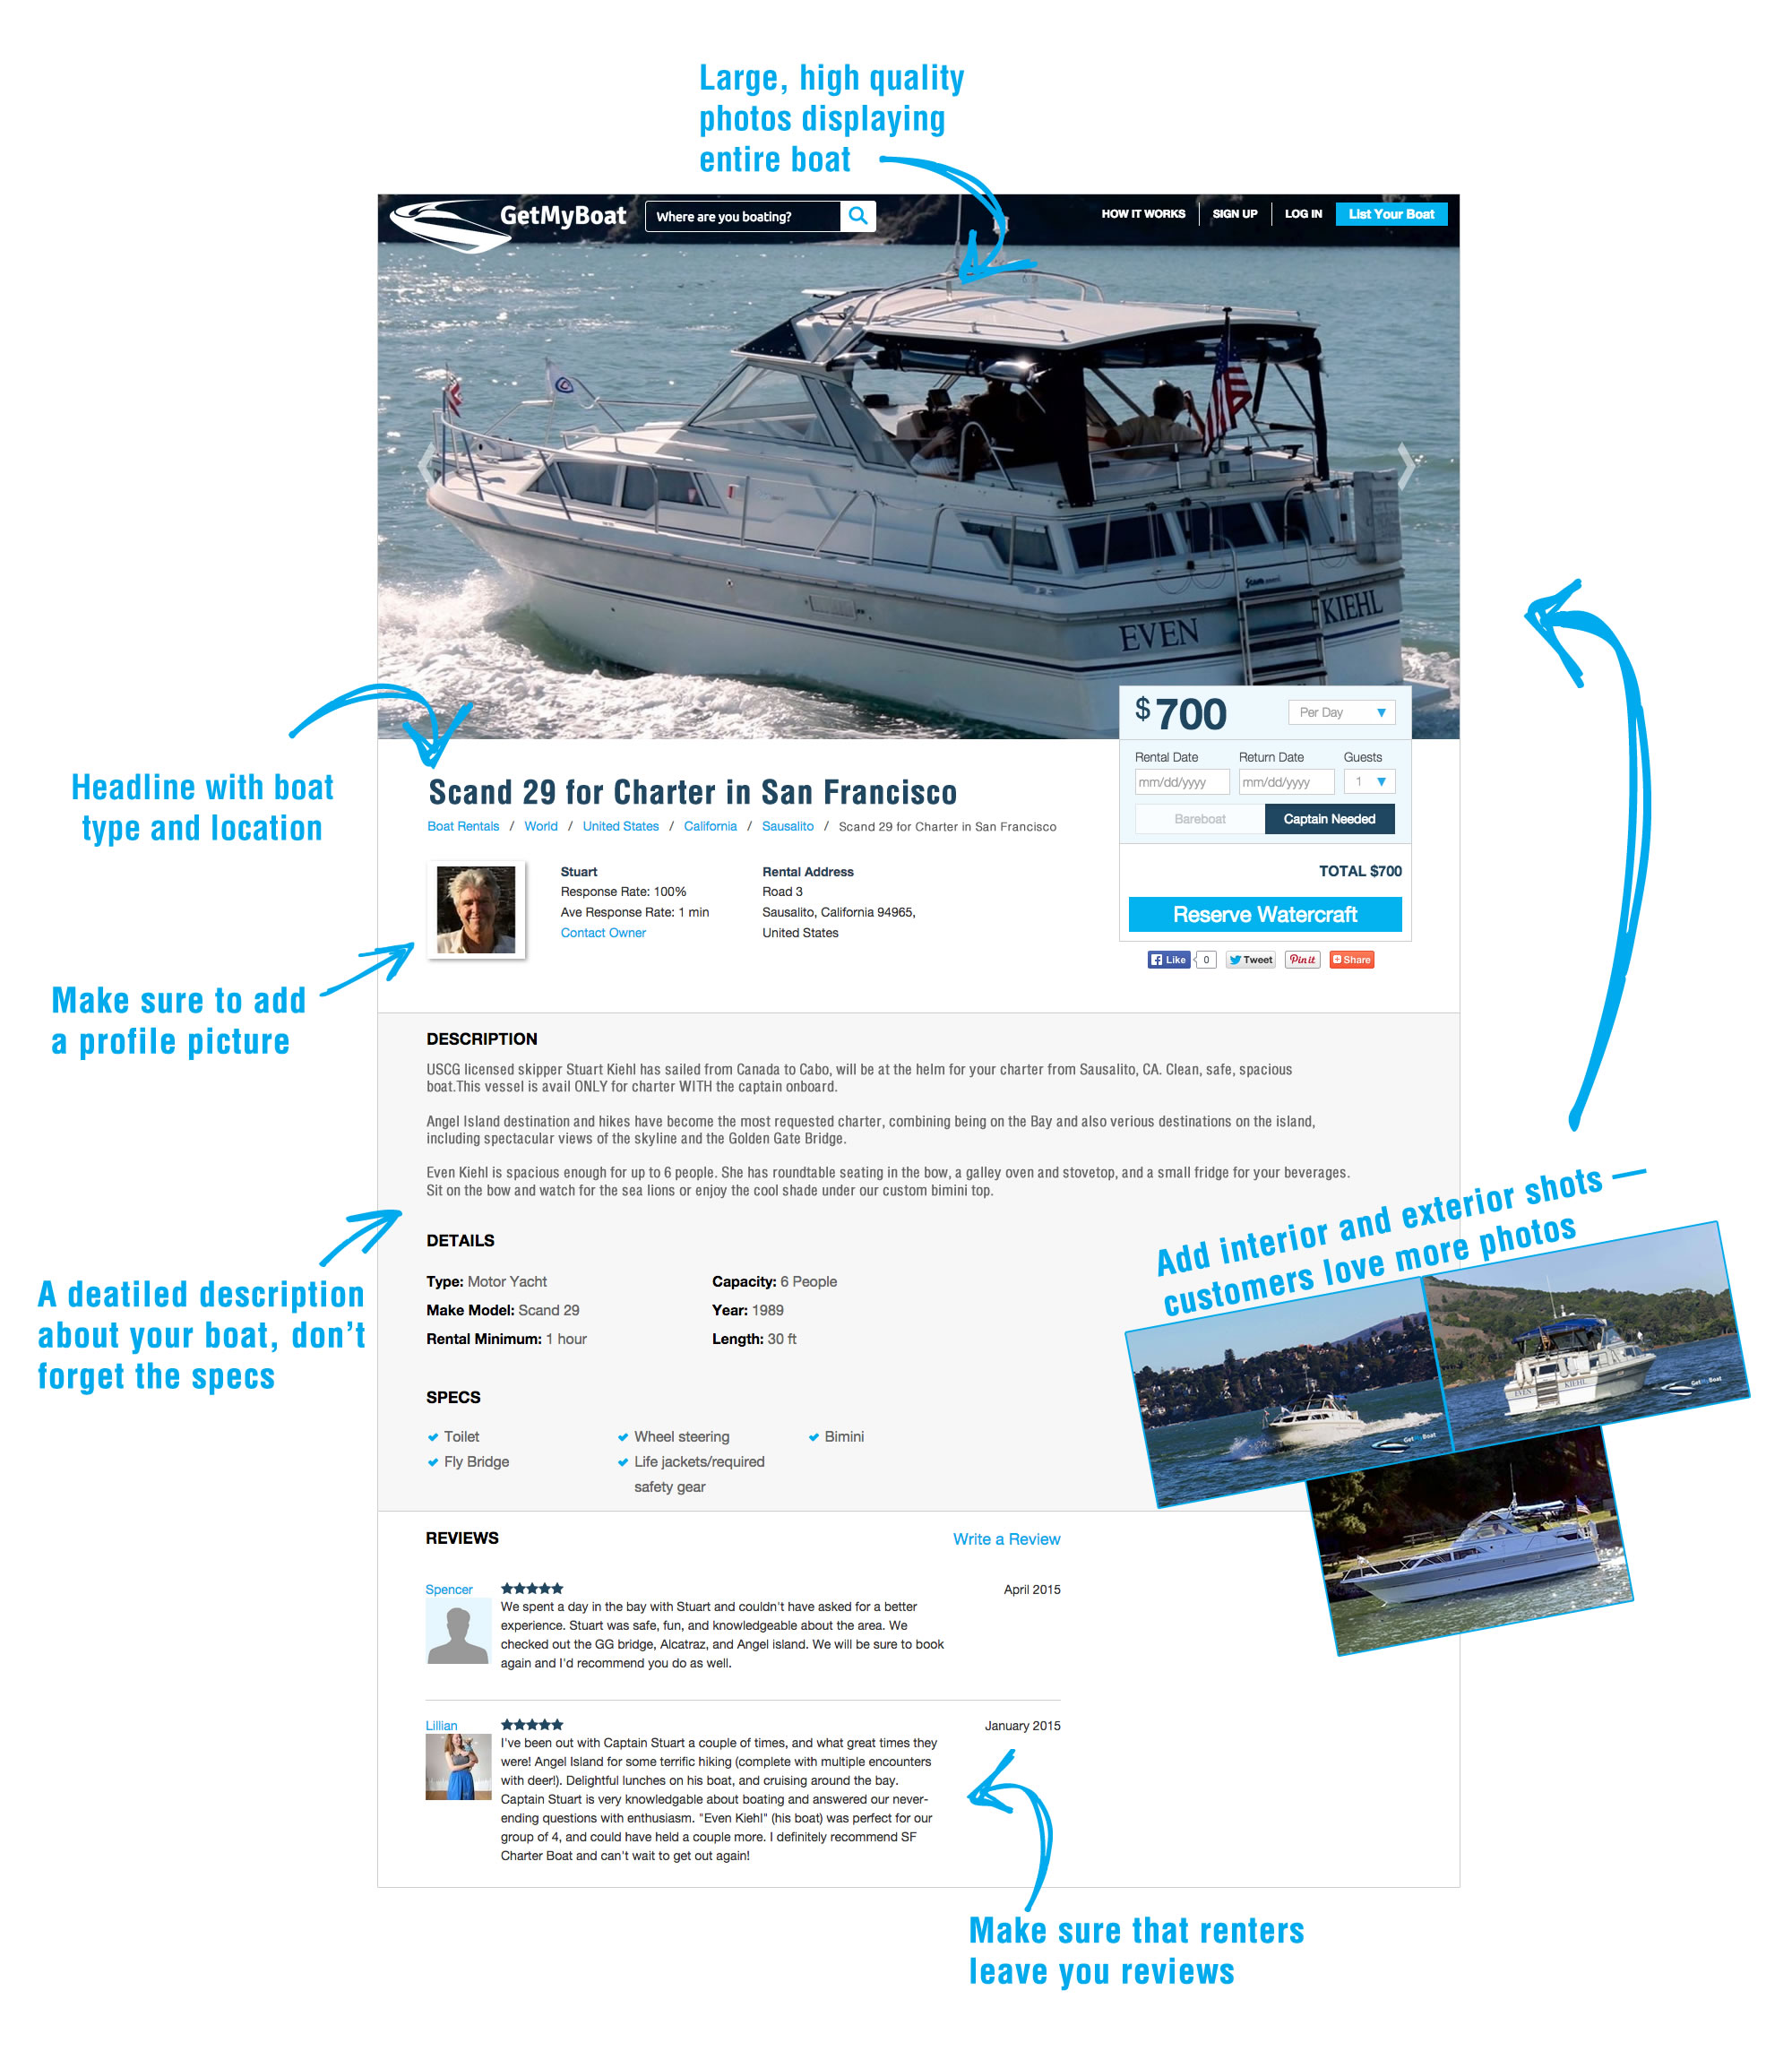 How to Create a Stunning Boat Rental/Charter Listing